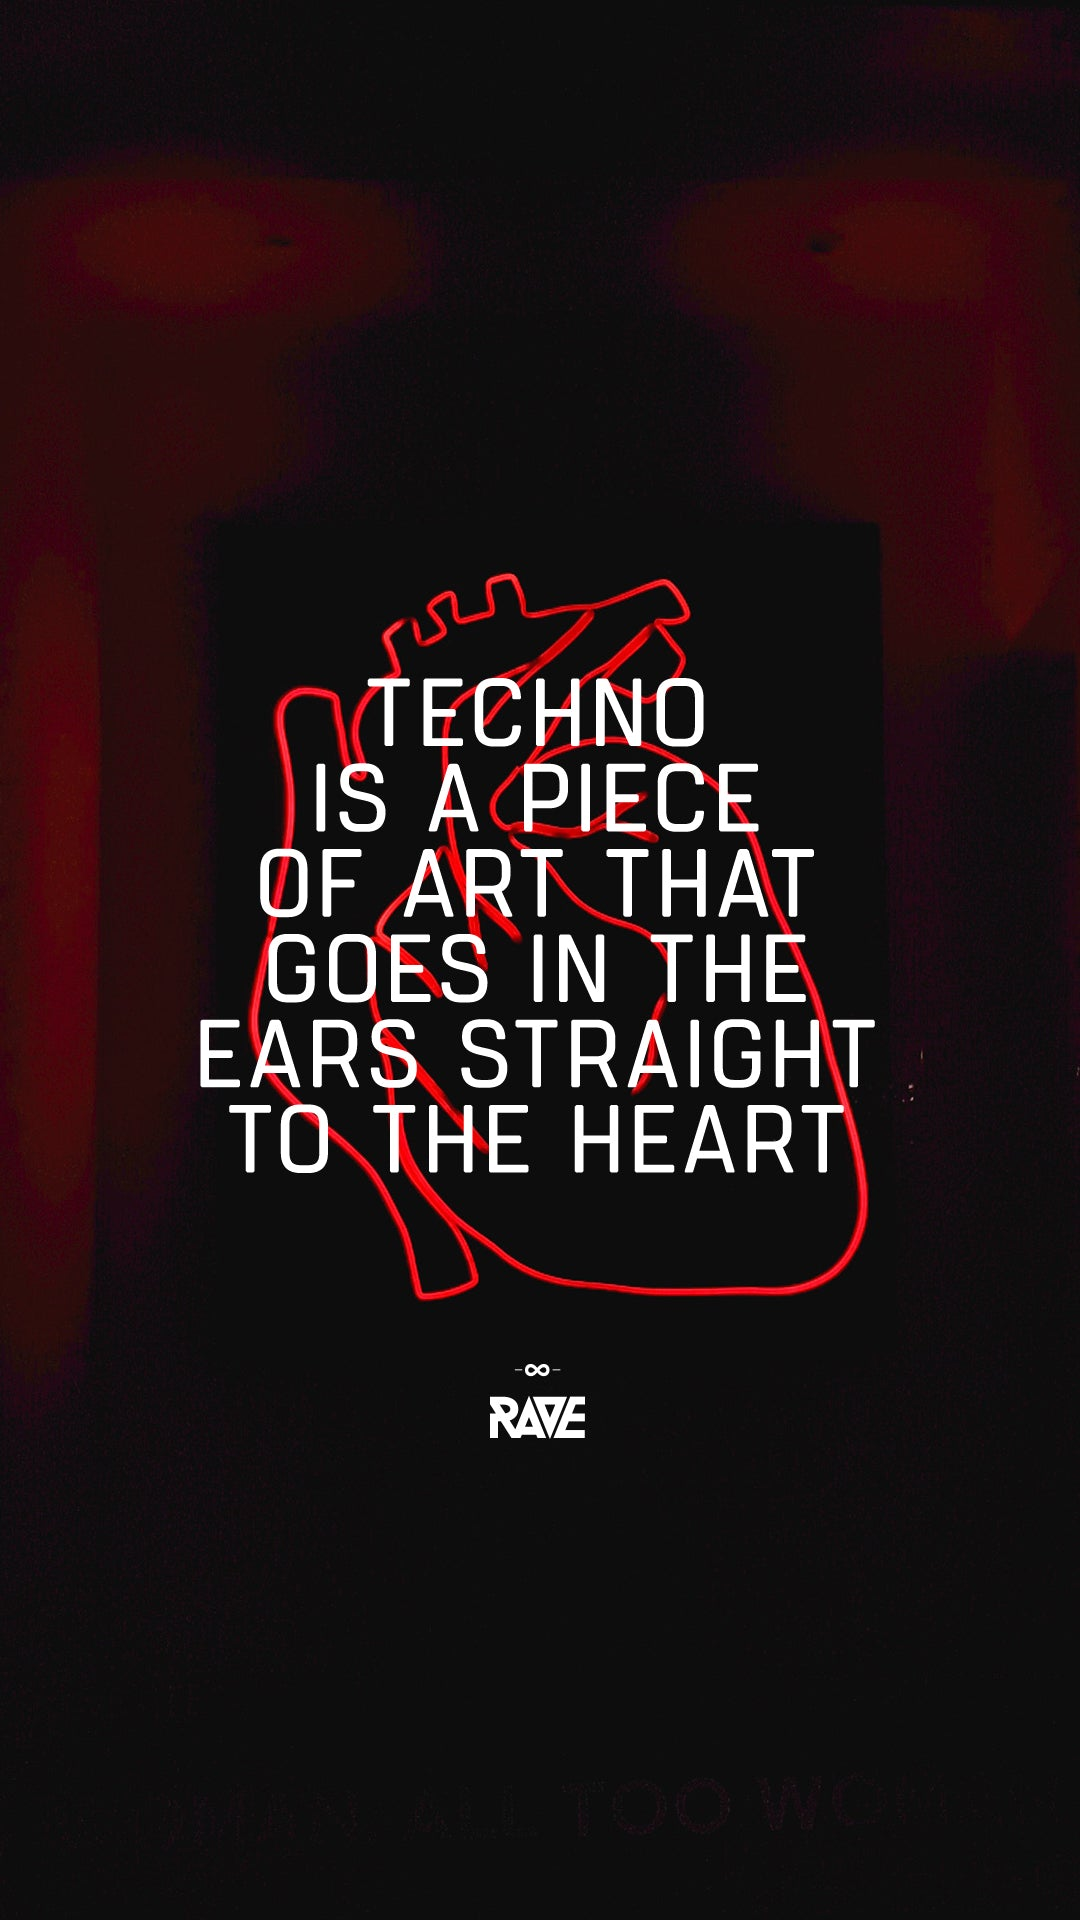 Techno is a piece of art that goes in the ears straight to the heart Wallpaper